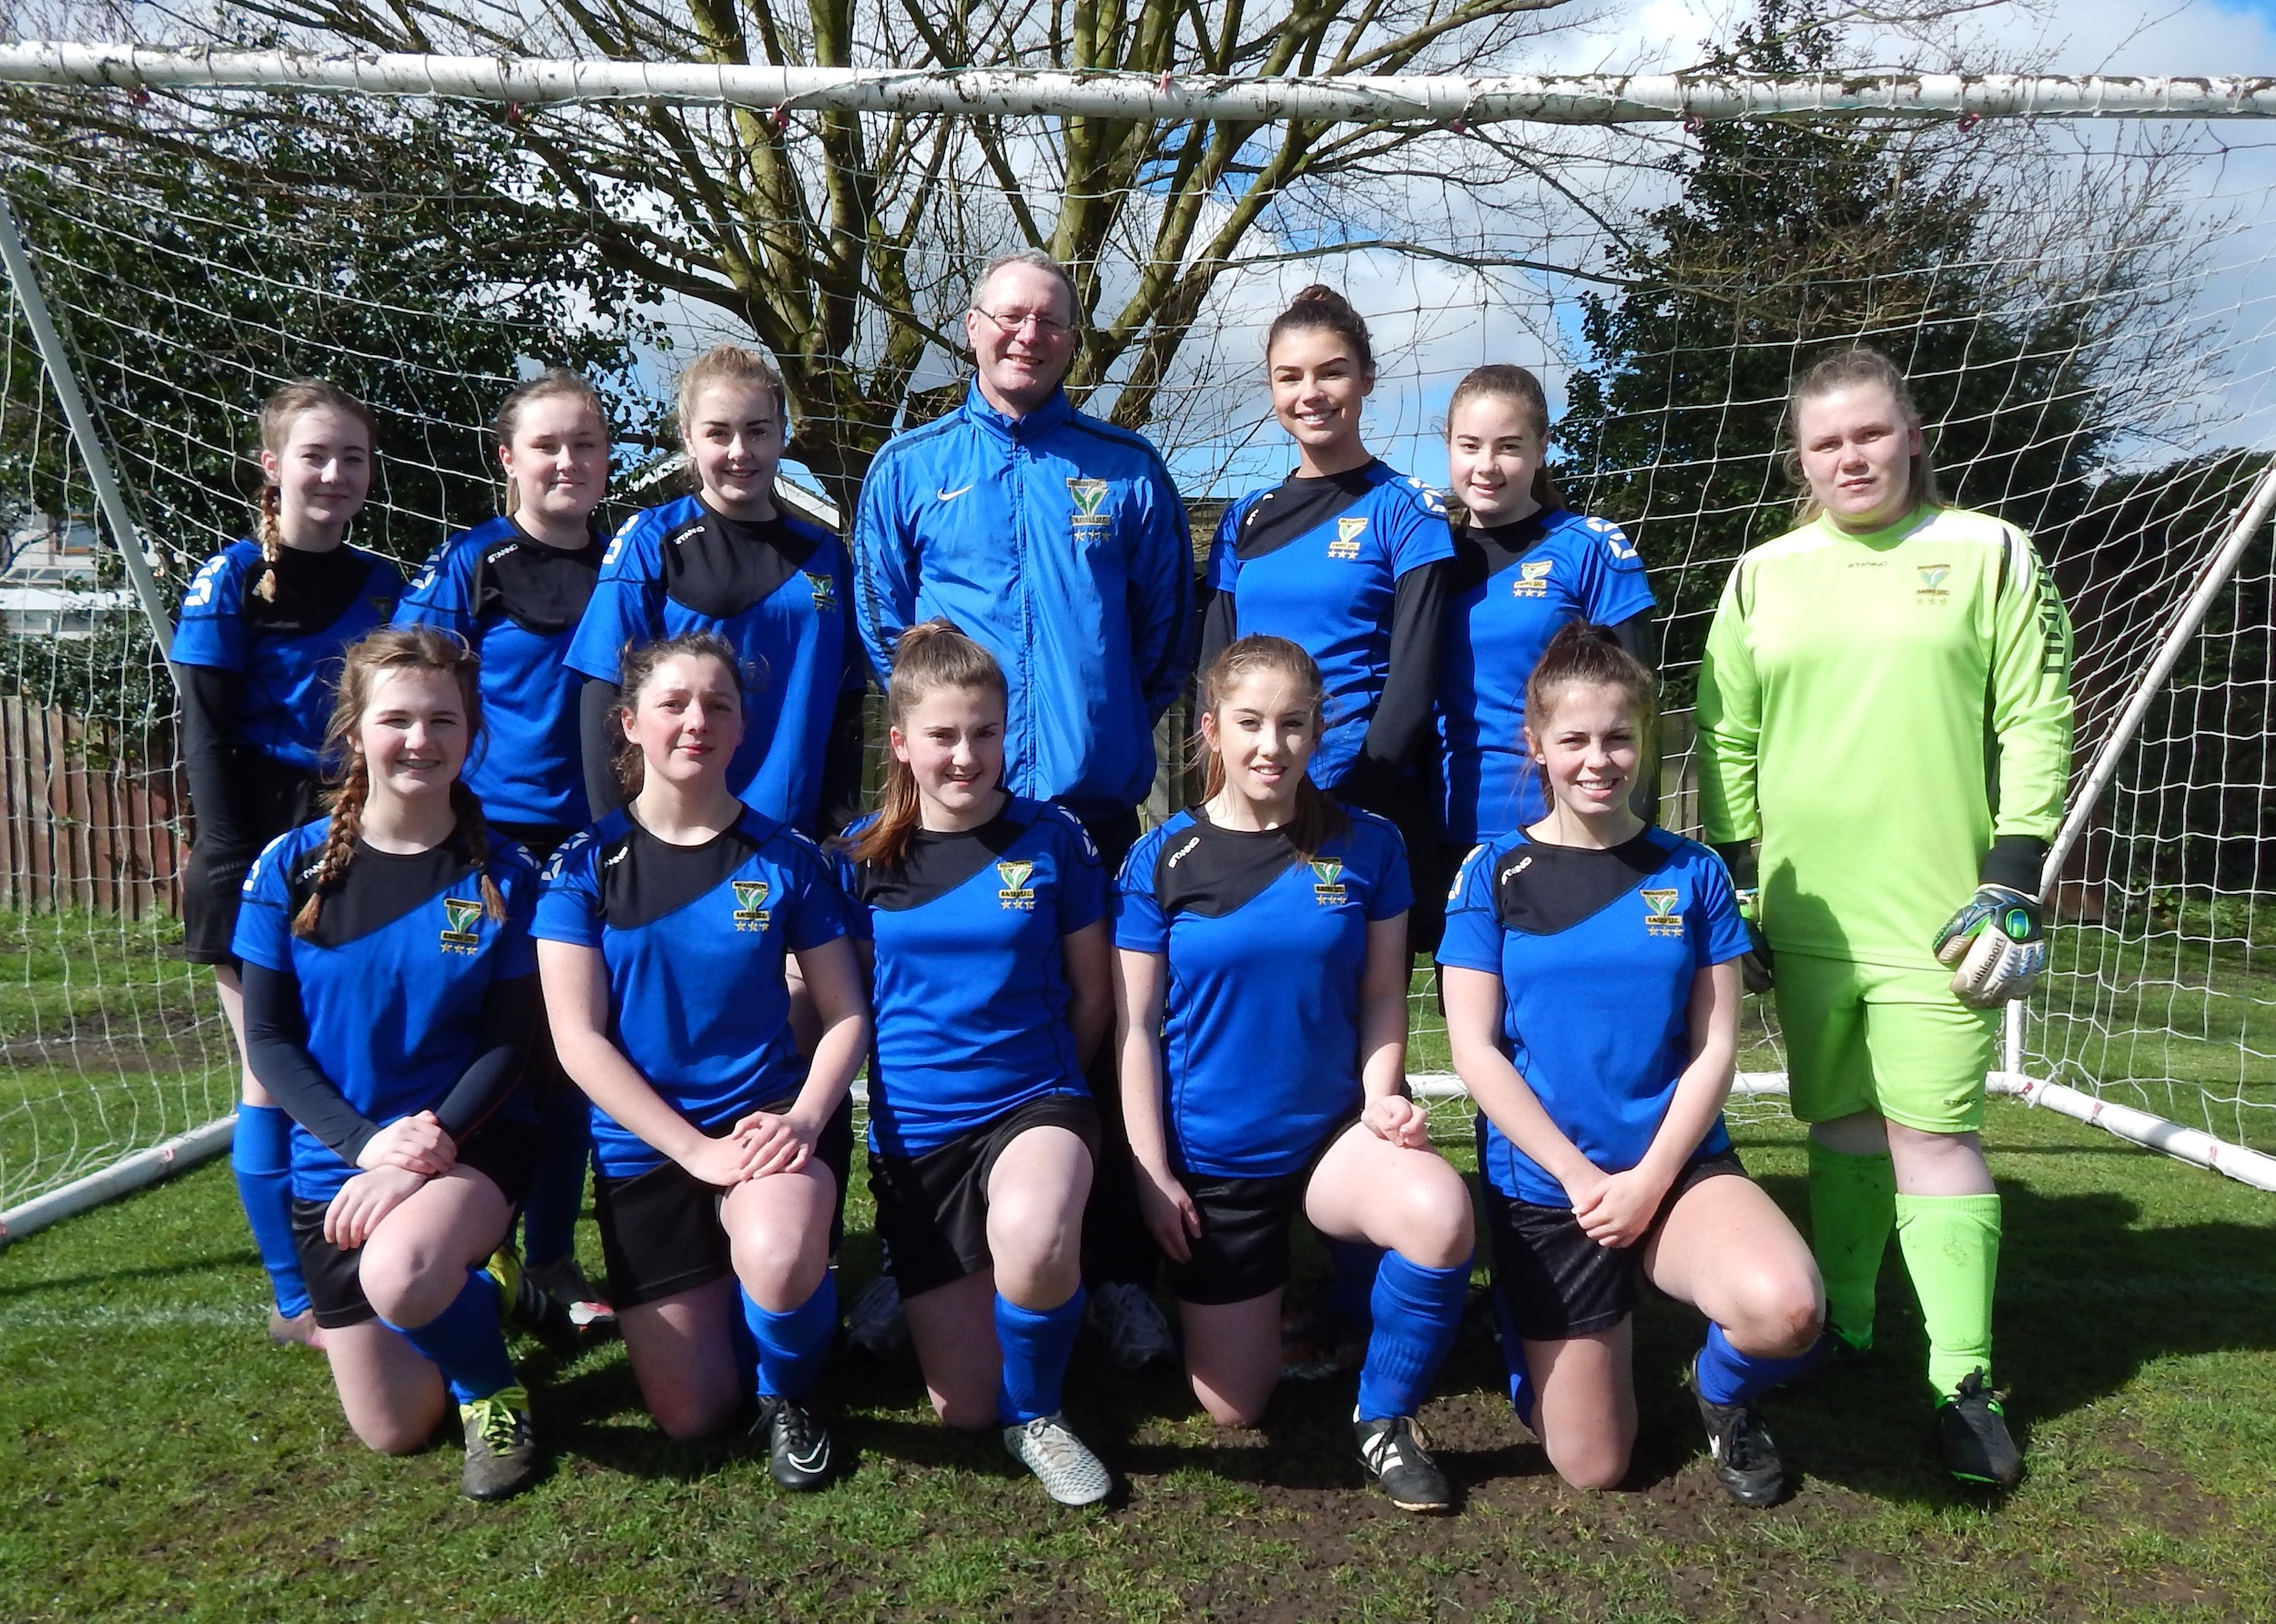 Broughton Ravers U16 girls